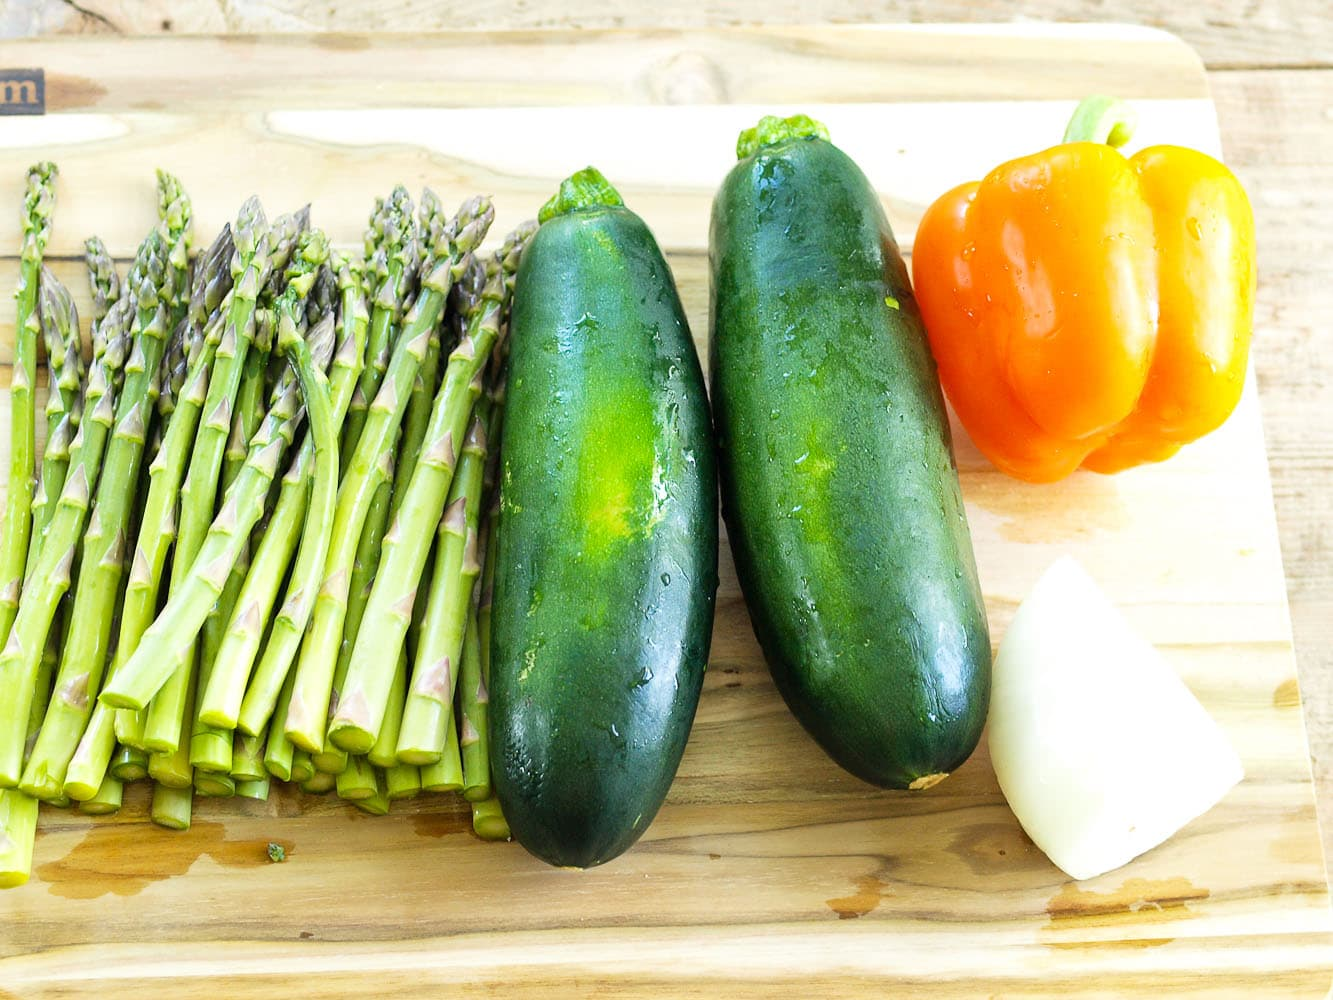 Grilled Vegetables with Pasta recipe. This is an easy vegetarian dinner recipe that uses delicious grilled vegetables! Quick, easy, and healthy meal idea!